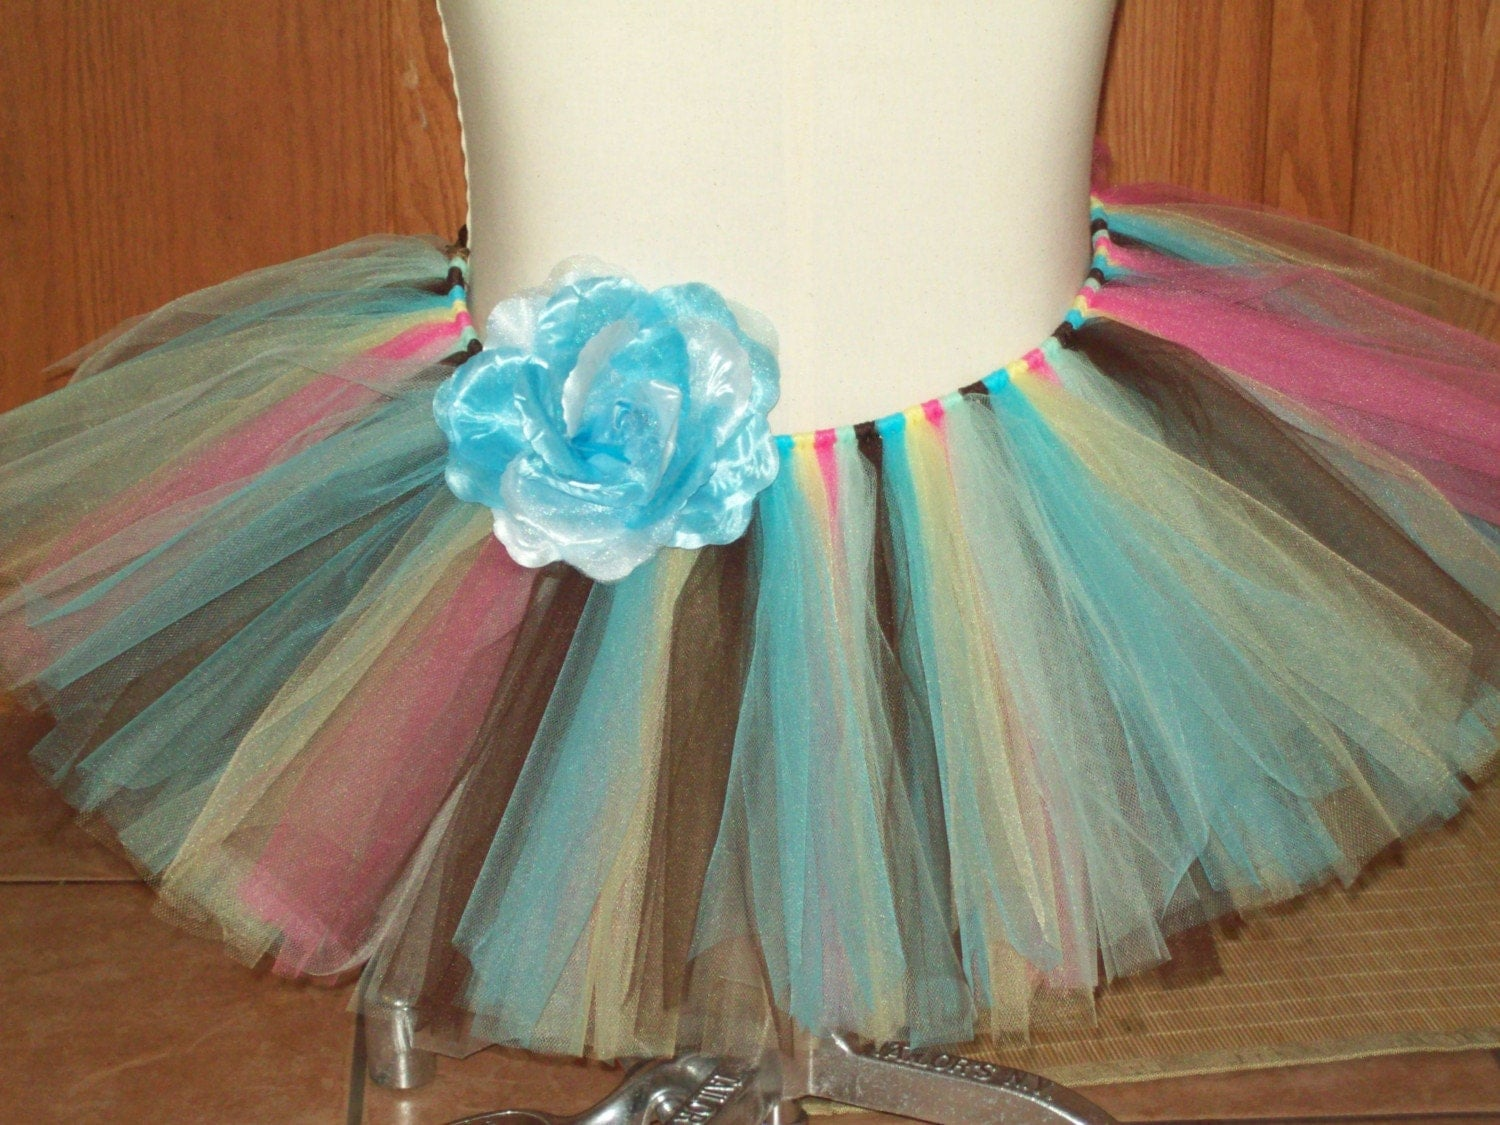 CUSTOM ORDER THE TUTU OF YOUR DREAMS GREAT FOR PHOTOGRAPHY PROPS OR PORTRAITS OR DRESS UP FAST SHIPPING